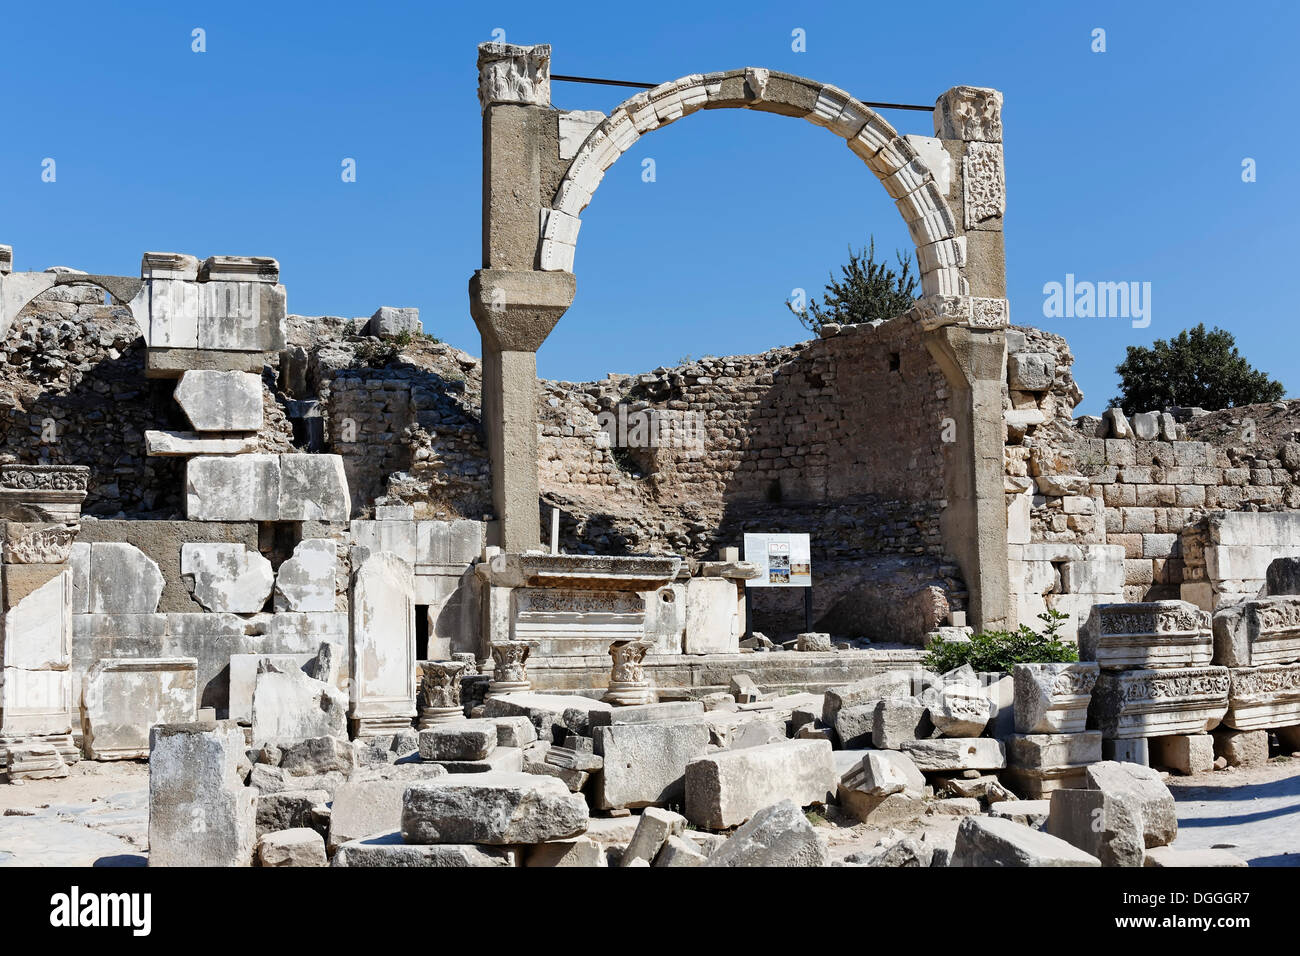 Polio Fountain, UNESCO World Heritage Site, Ephesus, Ephesos, Efes, Izmir, Turkish Aegean, western Turkey, Turkey, Asia - Stock Image